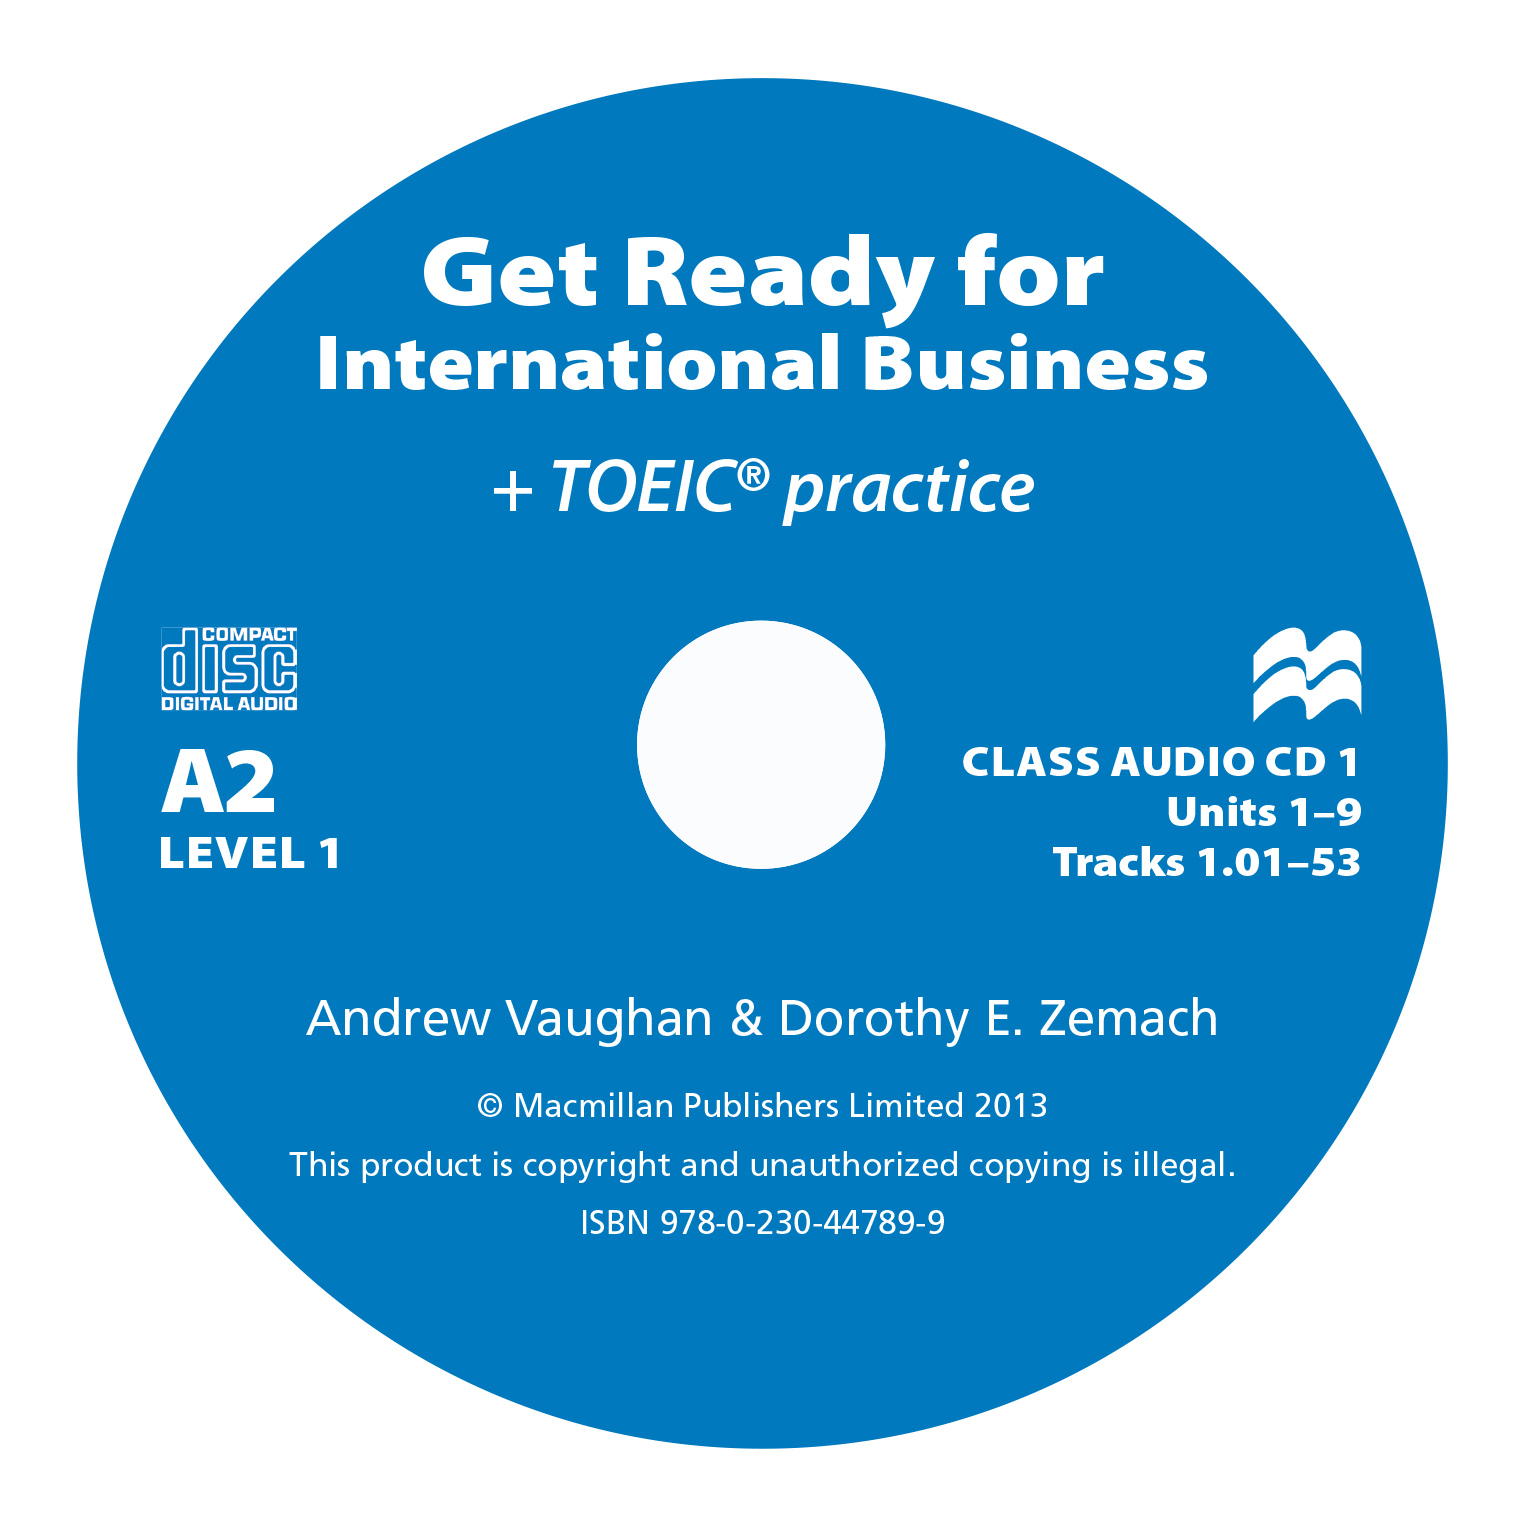 Get Ready For International Business 1 Class Audio CD - TOEIC